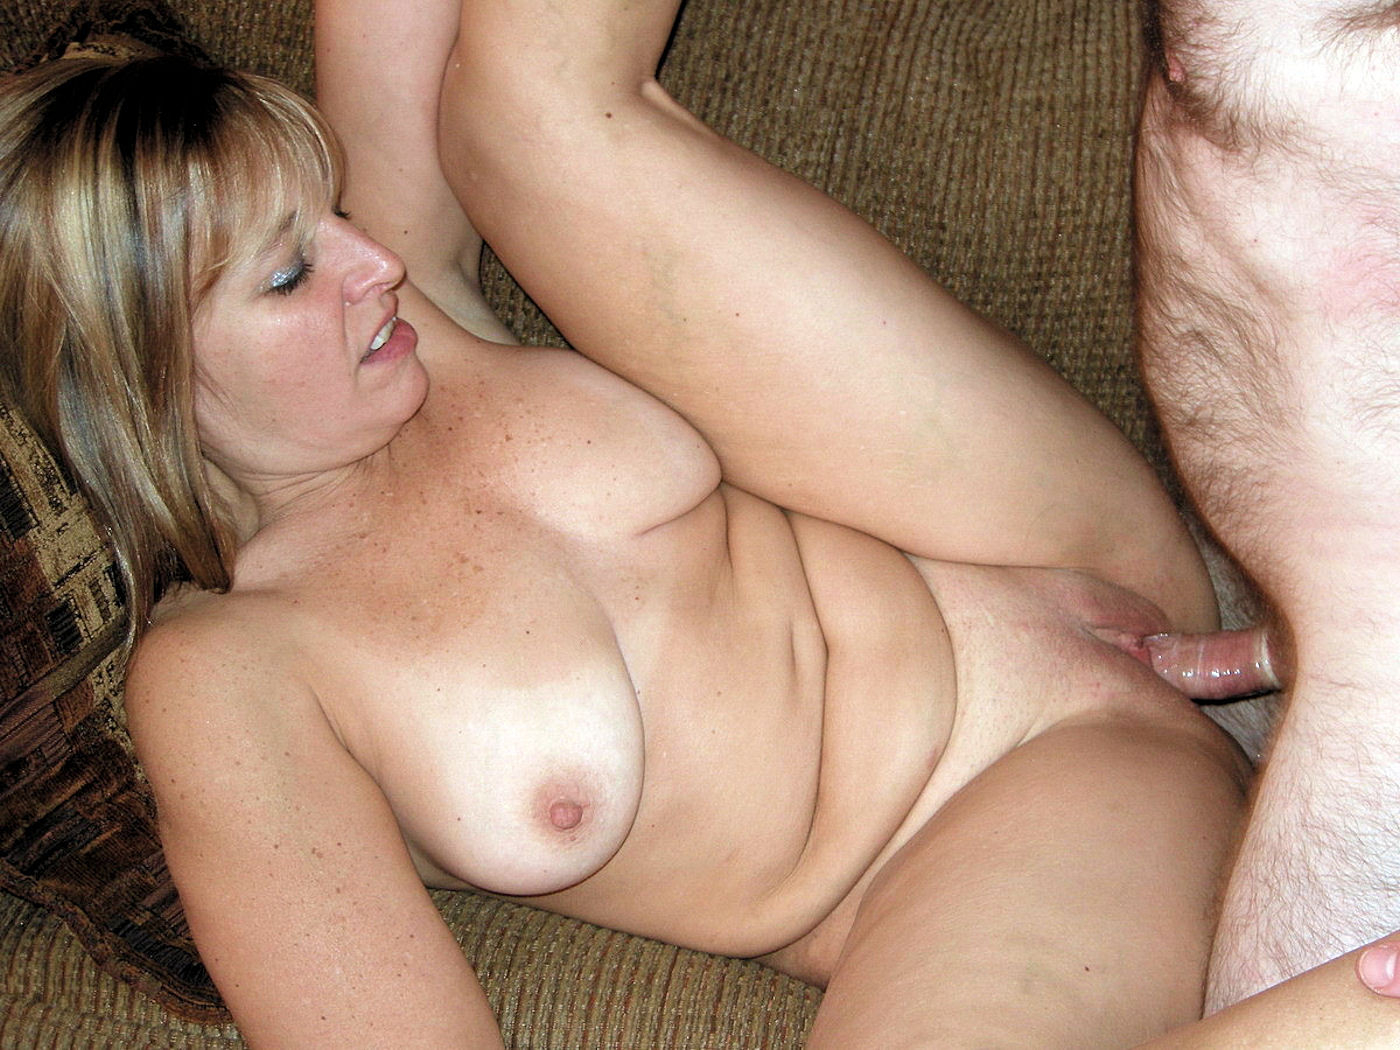 naked housewives 1 - motherless